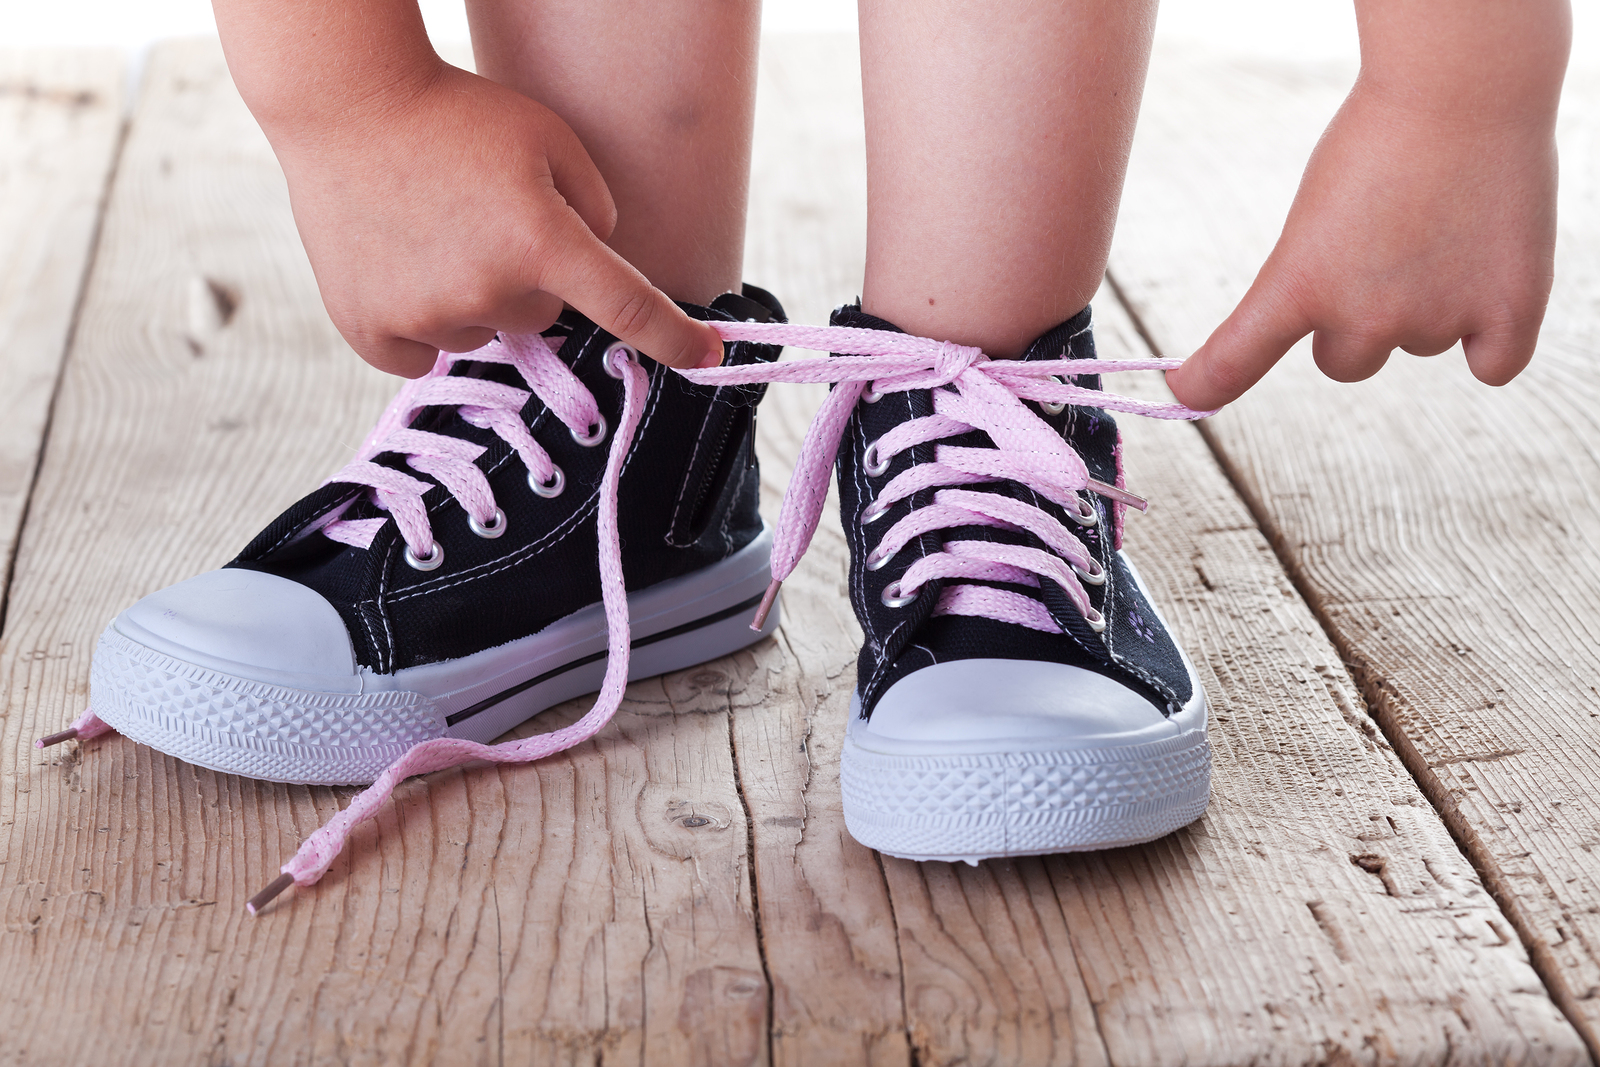 http://www.google.gr/imgres?imgurl=http://www.talcmag.gr/wp-content/uploads/2014/09/bigstock-Child-Successfully-Ties-Shoes-34396691.jpg&imgrefurl=http://www.talcmag.gr/sizitondas/syntonisou-paidi-mou/&h=1067&w=1600&tbnid=t3gQZYMfM6oWqM:&docid=QxF6ro9rKtydCM&ei=fuO1VdOiKYuzsQHm5pvYAg&tbm=isch&ved=0CCQQMygGMAZqFQoTCNPZrrTq-sYCFYtZLAodZvMGKw